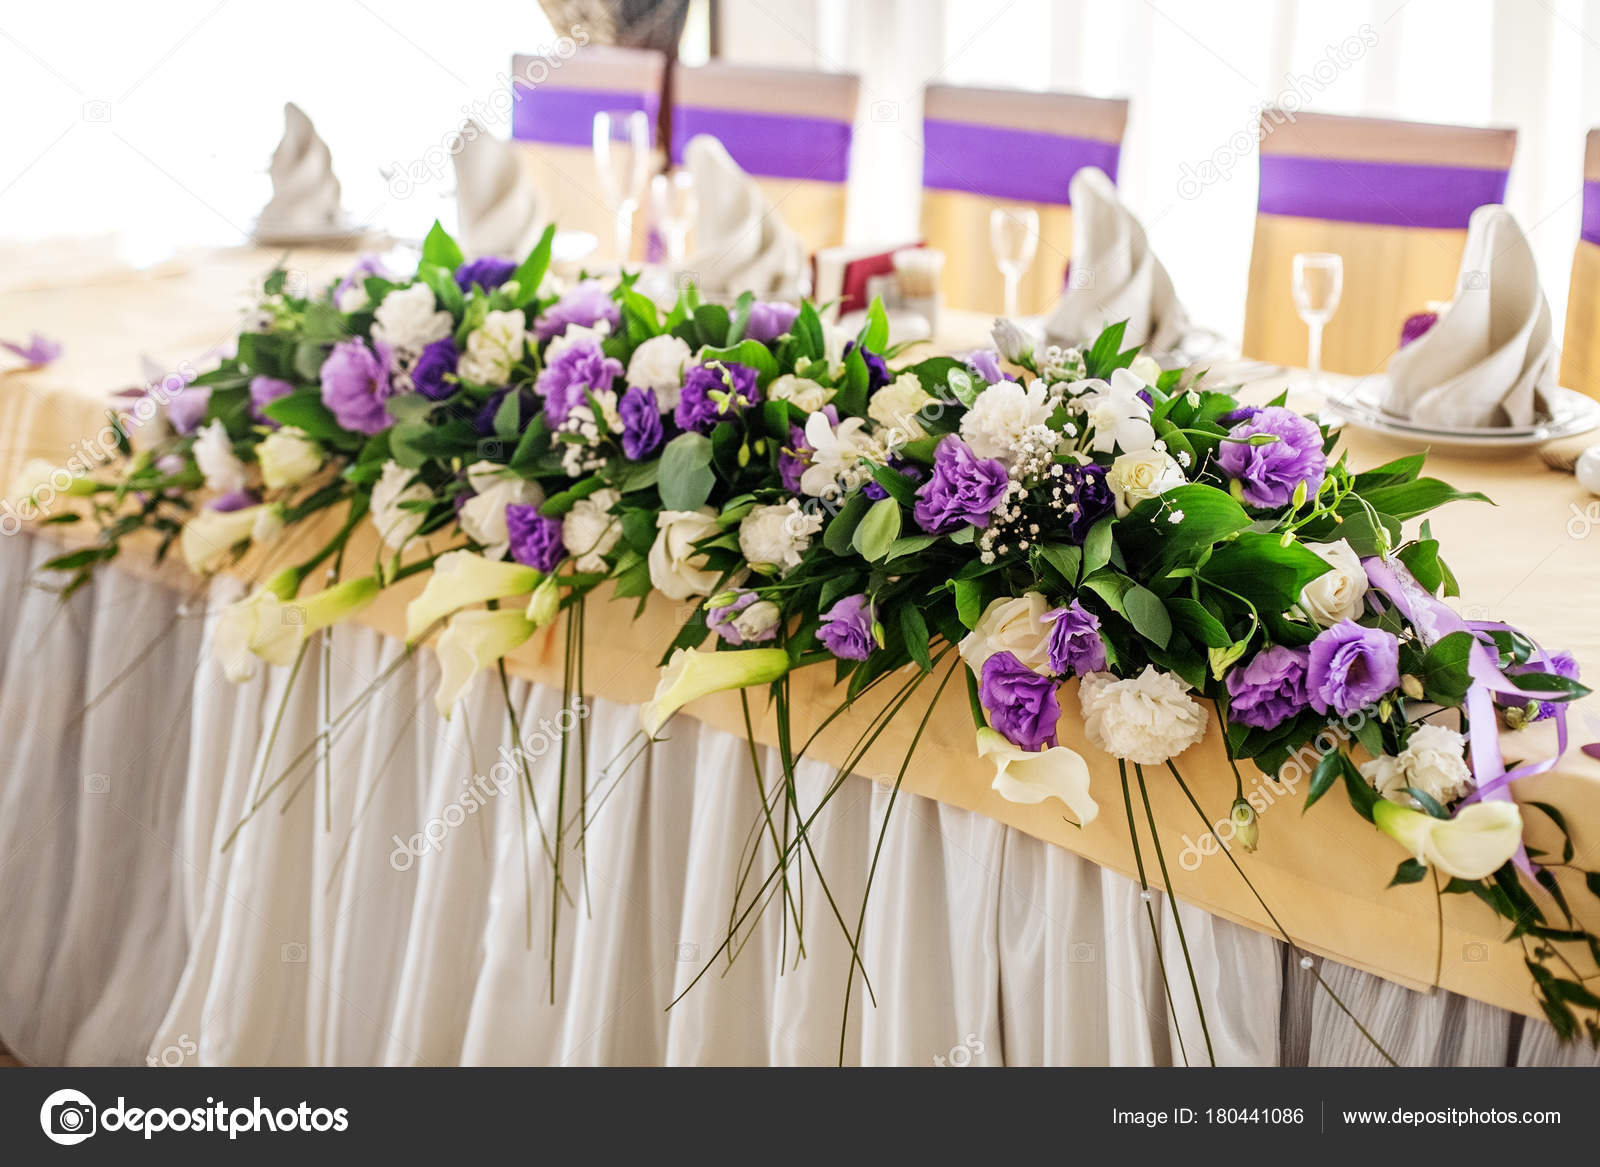 Flower Arrangement On The Table Purple And White Flowers Stock